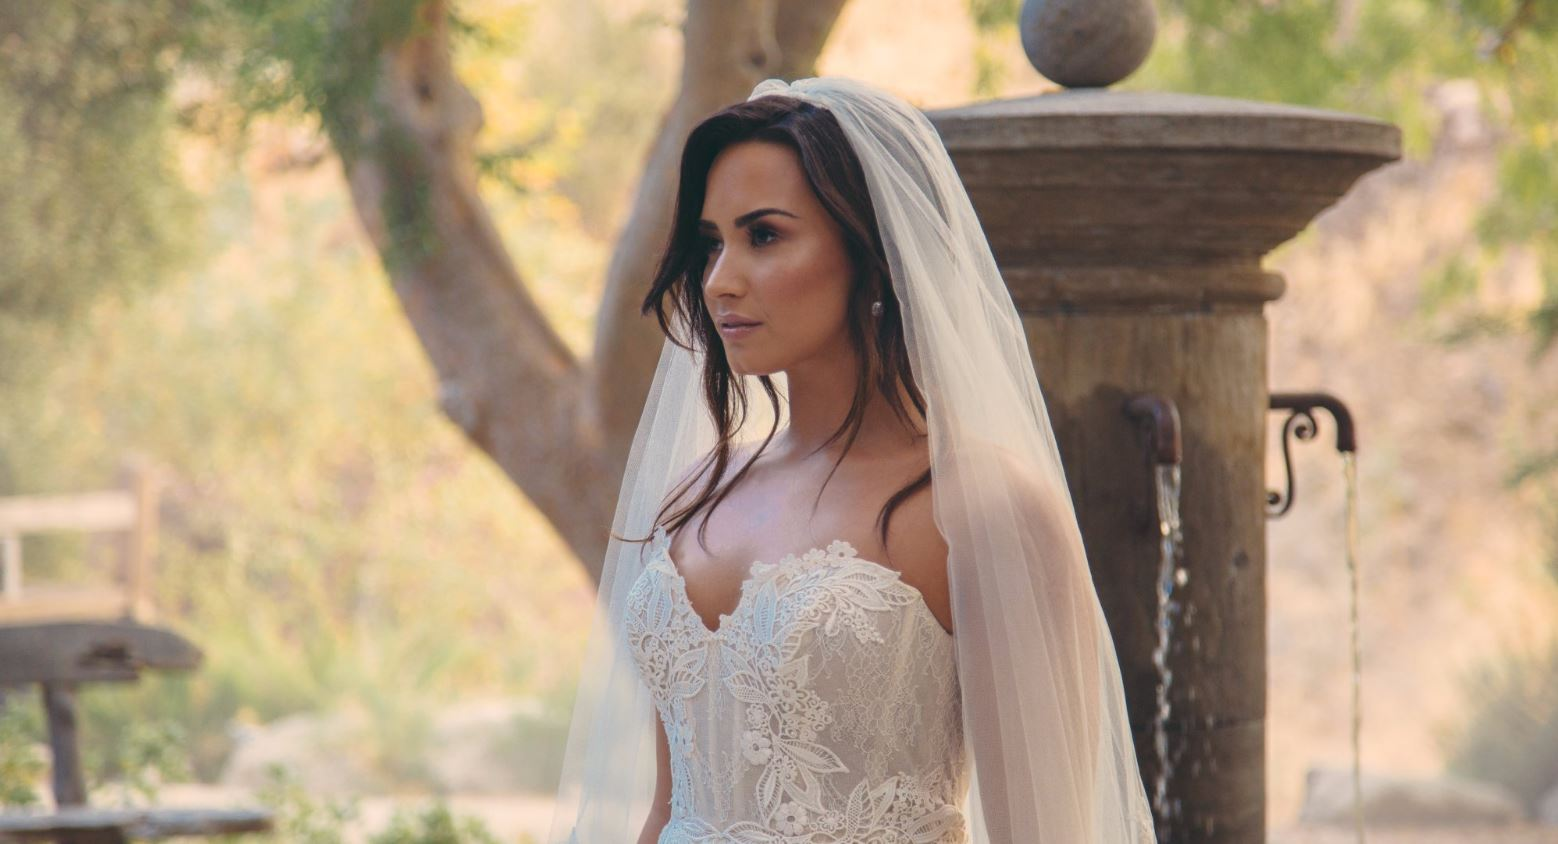 Demi Lovato gets engaged and married then dumped at the altar by Jesse Williams tragic Tell Me You Love Me video